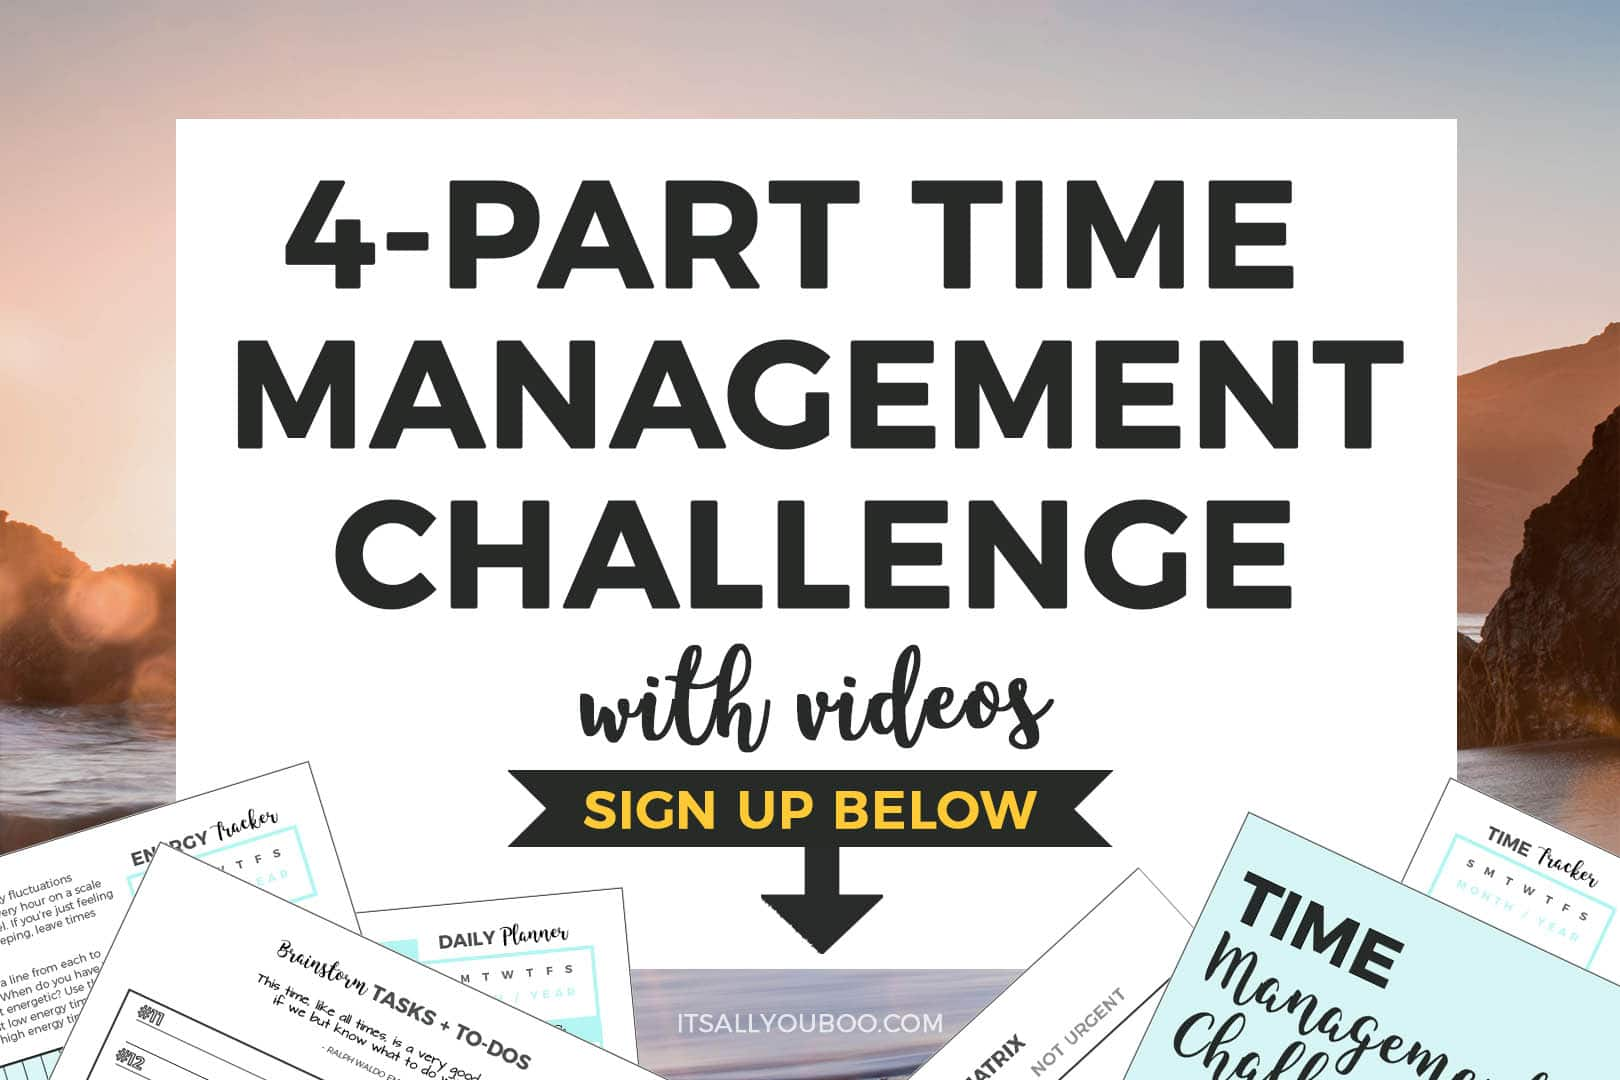 Sign up for FREE 4-Part Time Management Challenge